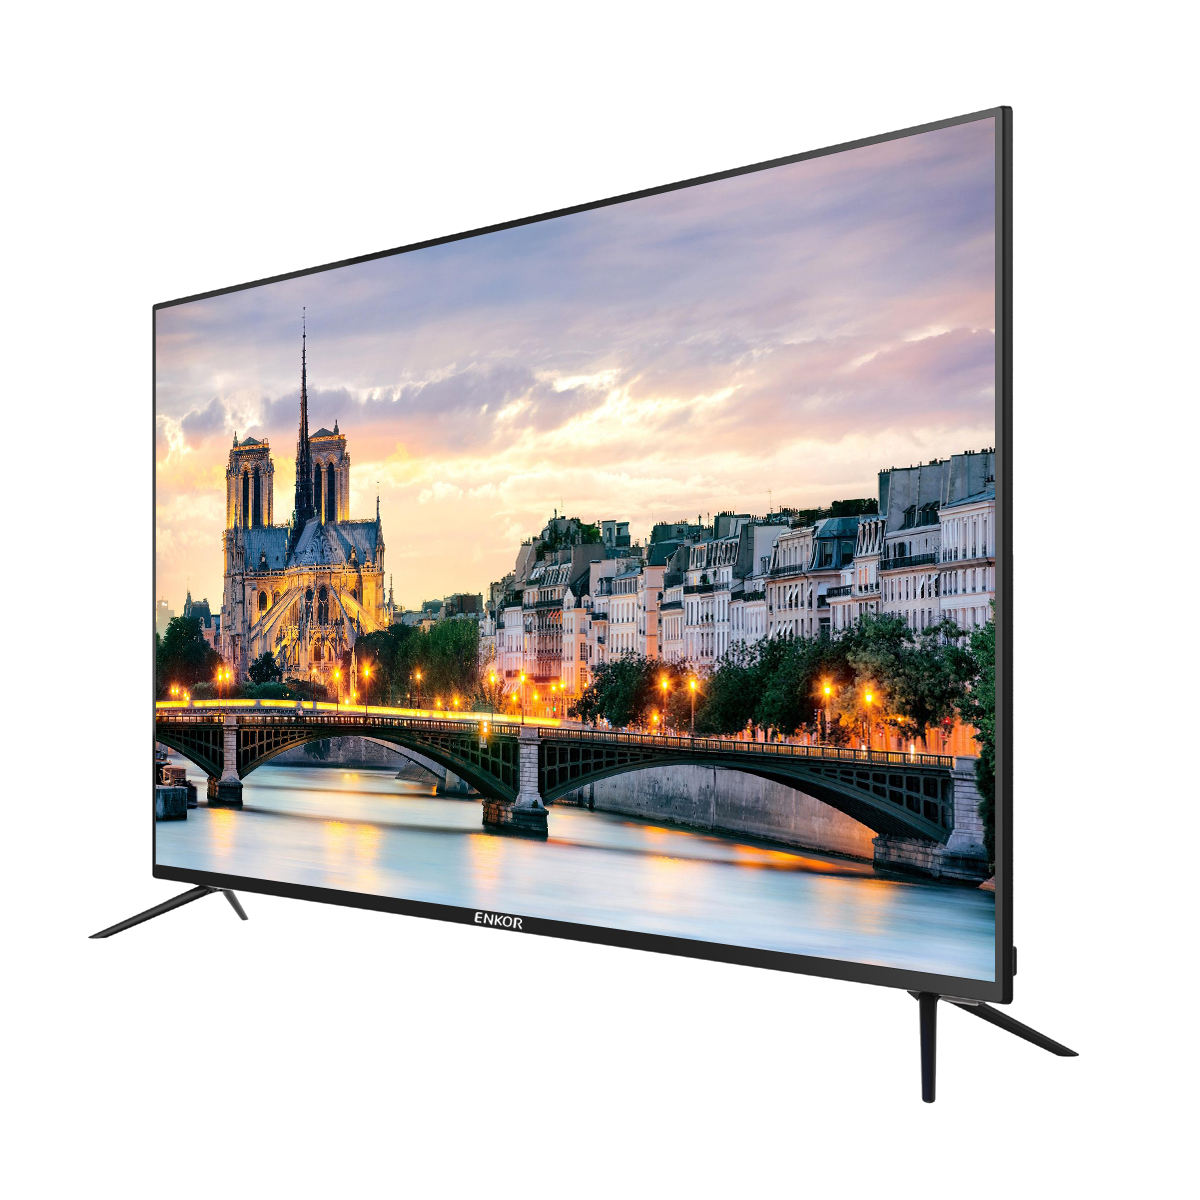 Smart Full Hd 43 Inch Iconische Led Tv